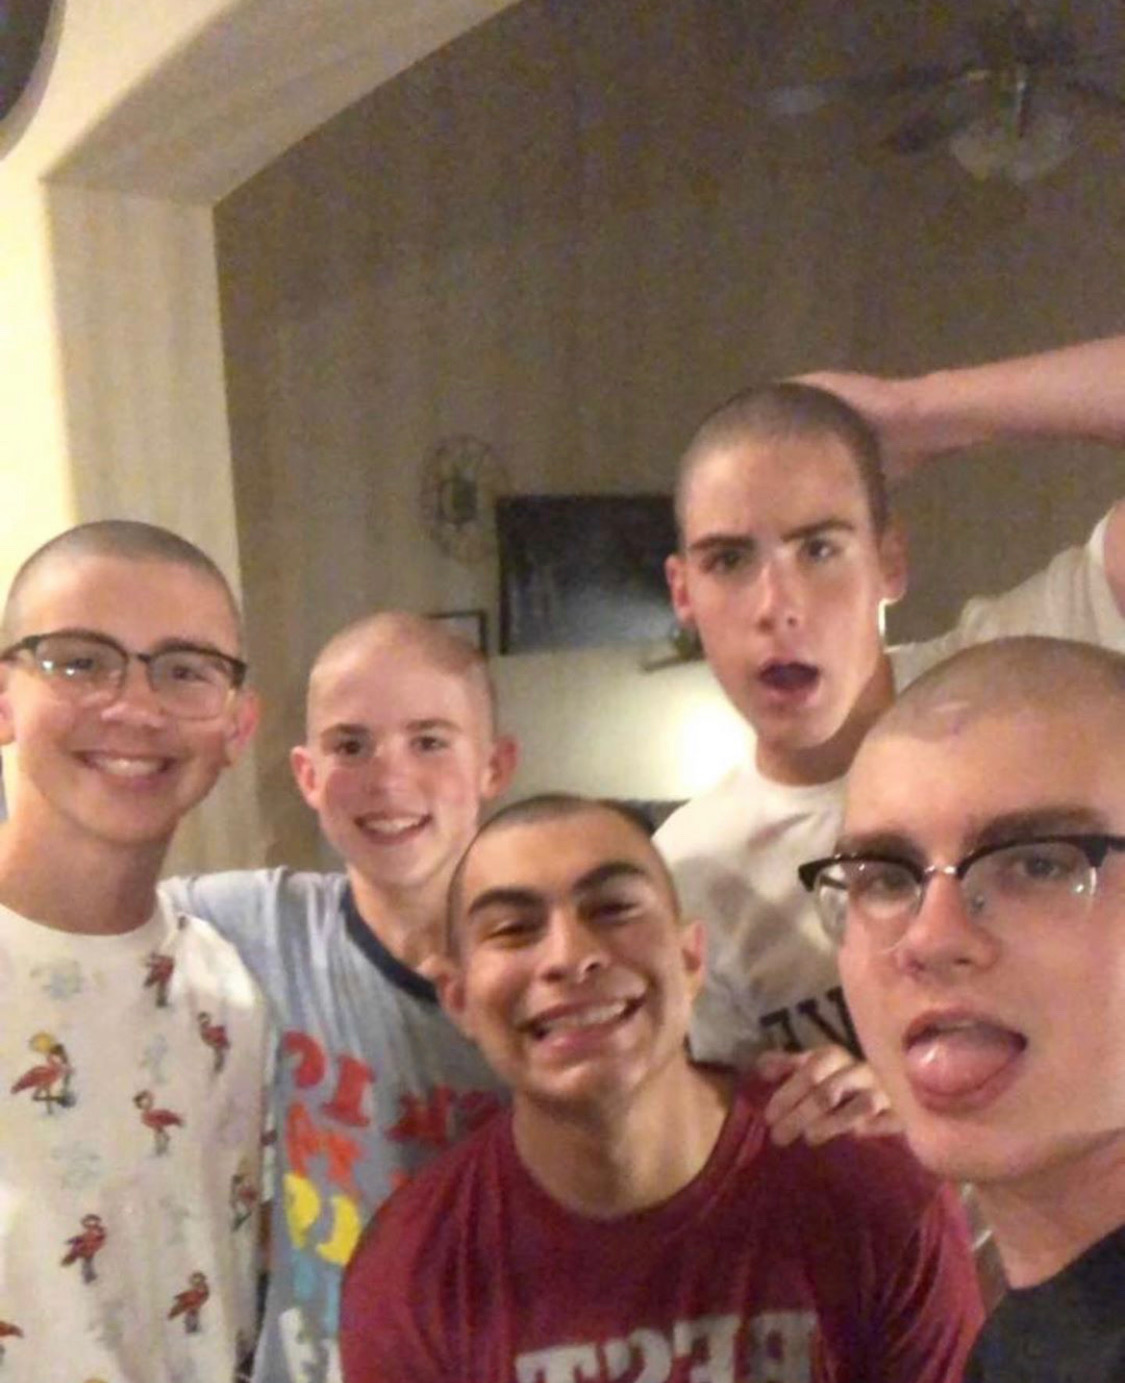 Snip snip \\ Posing their new looks, junior Hayze Gore (second from the left) and his four friends enjoy the feel of the fresh air on their heads after a new shave in support for their friend battling cancer.